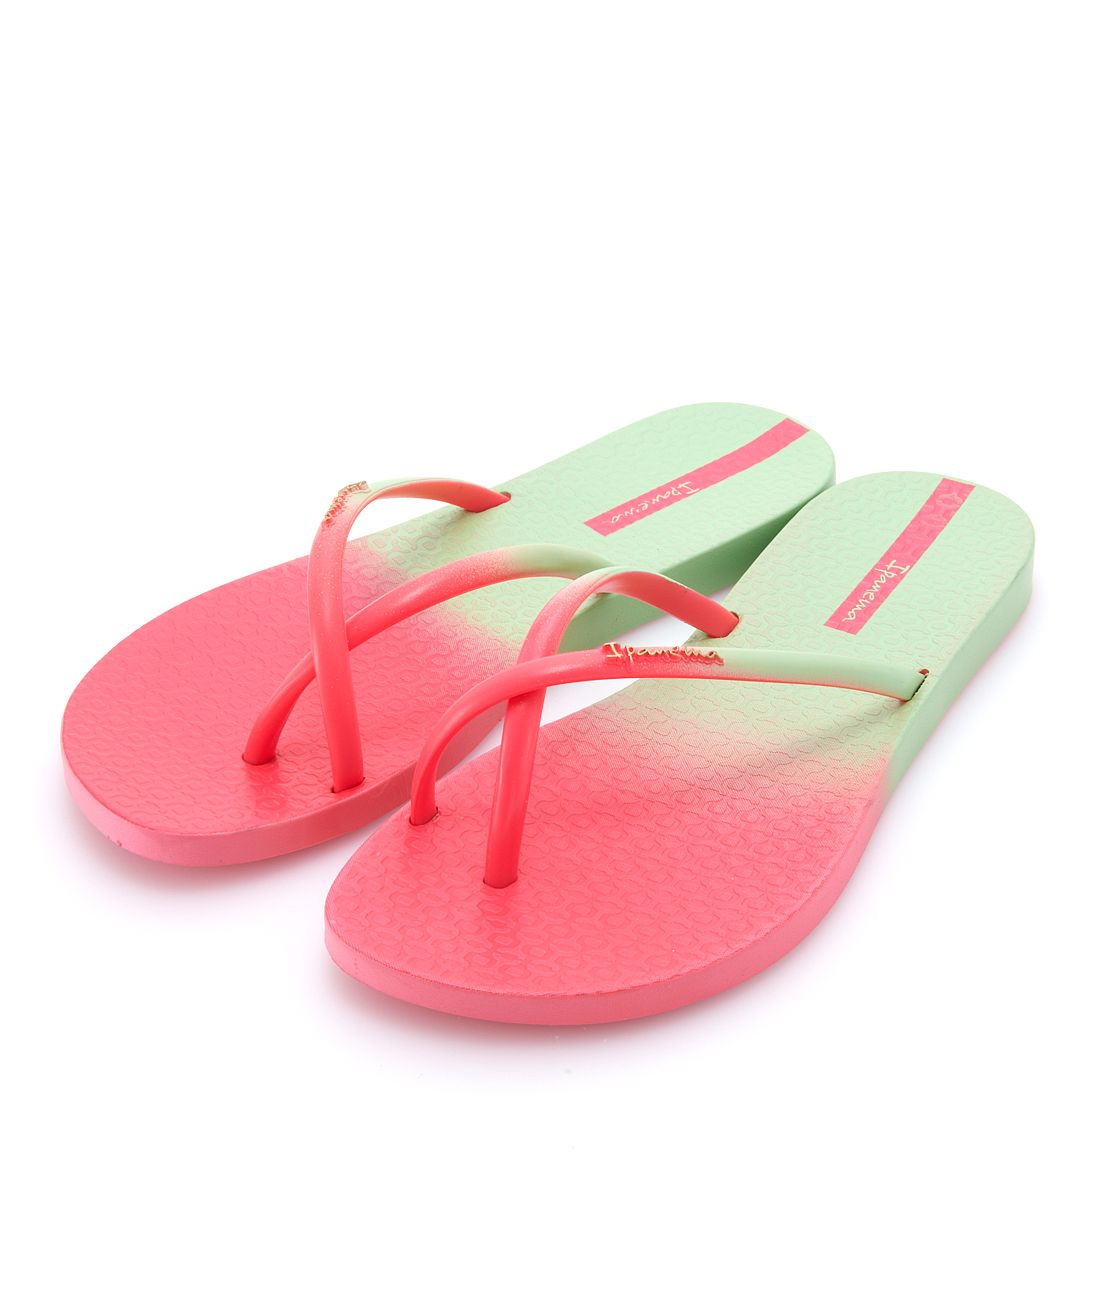 Ipanema cross beach sandals